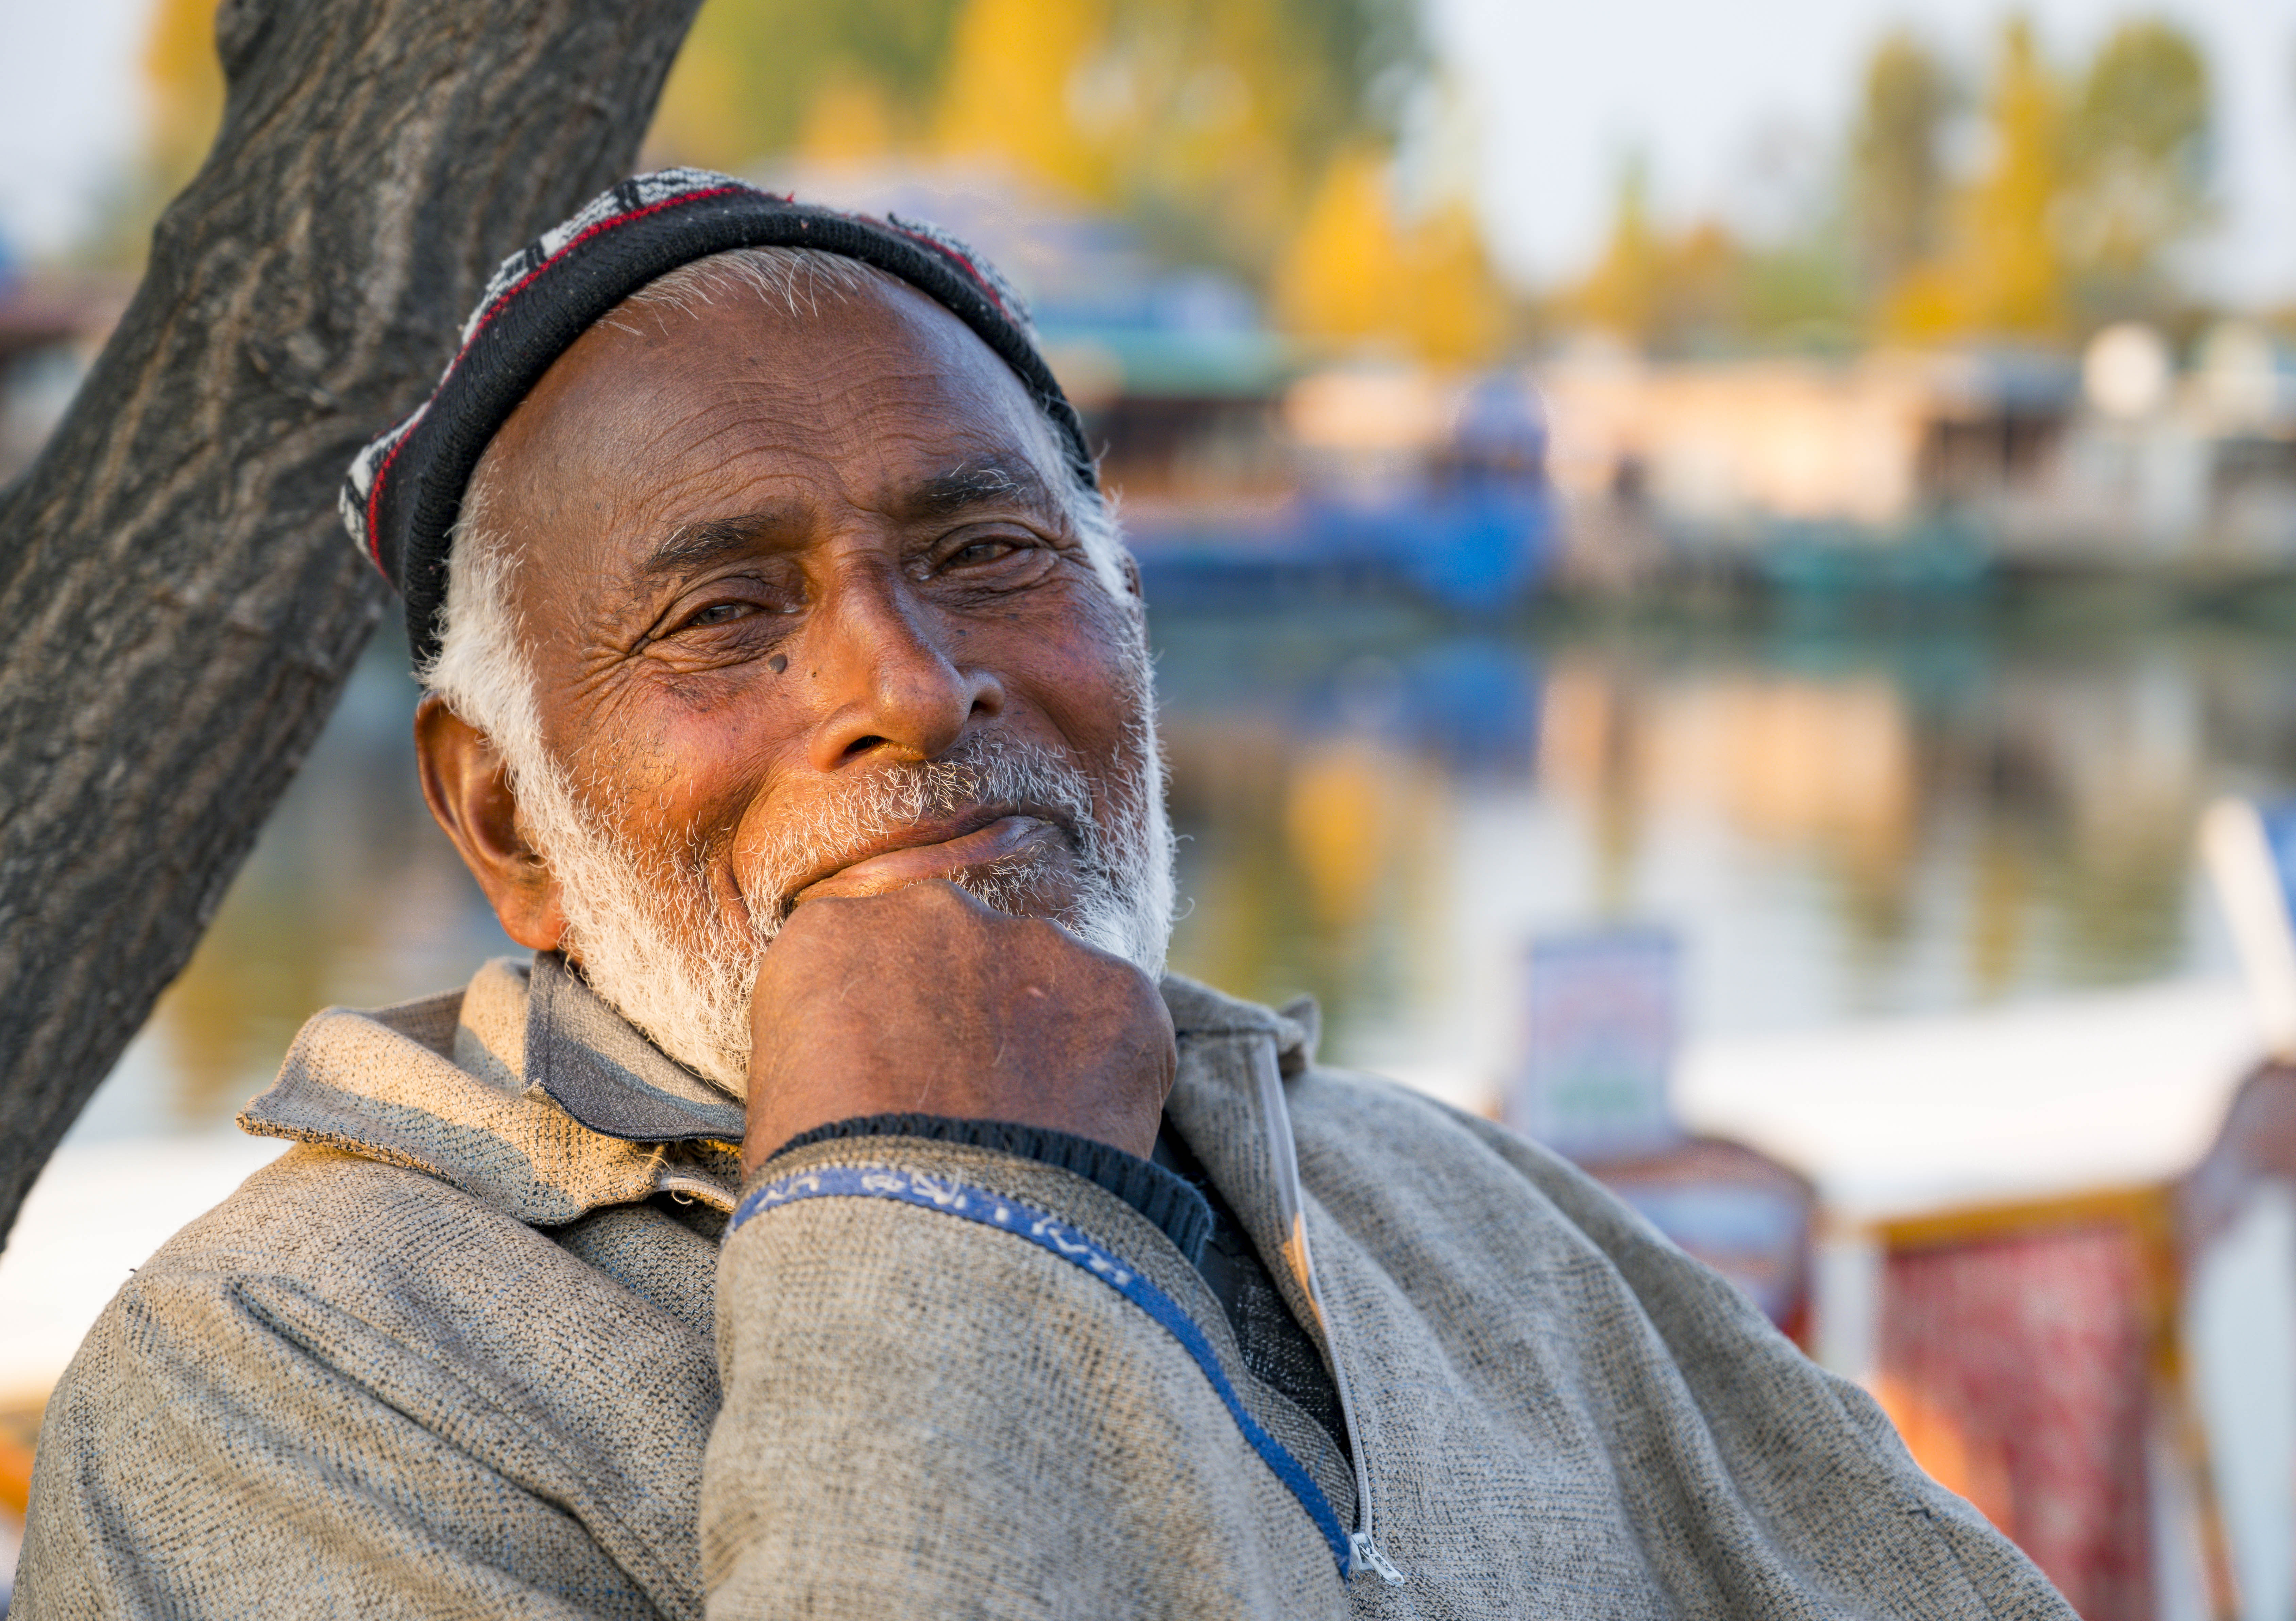 Portrait of a boatman, Srinagar